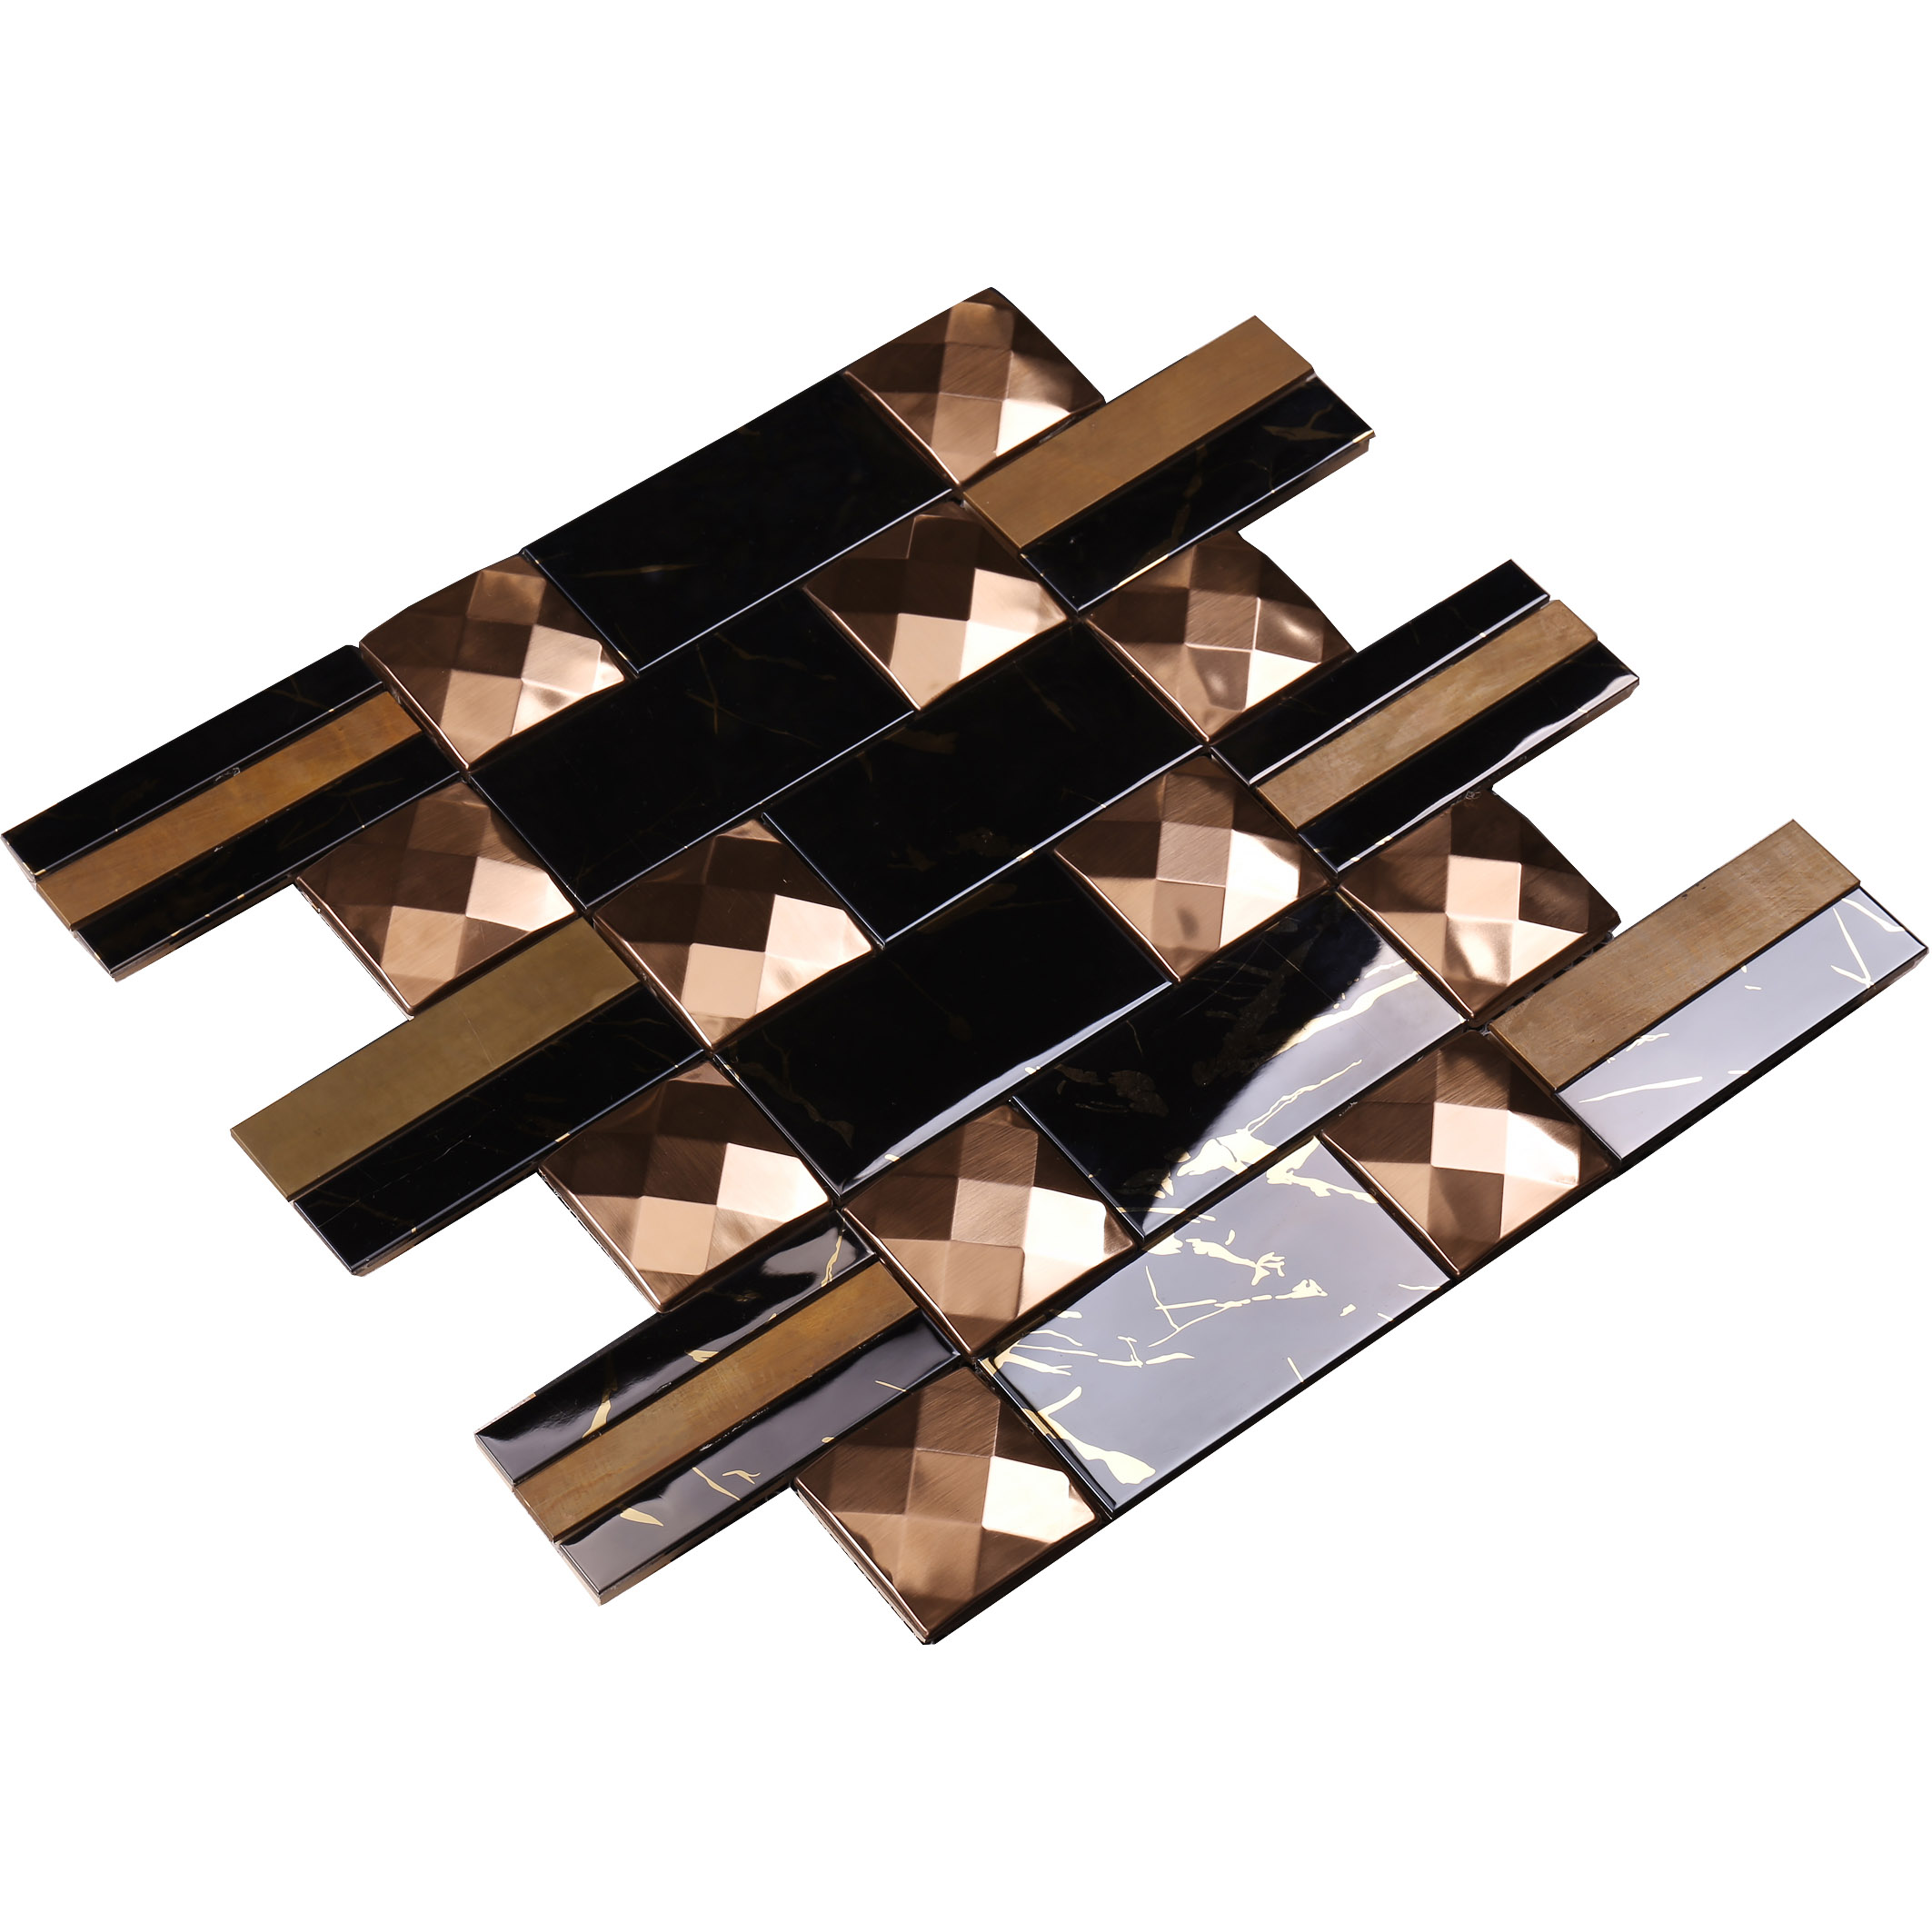 Top mosaic tiles online brown series for bathroom-Glass Mosaic Tile- Stone Mosaic Tile- Pool Mosaic -1